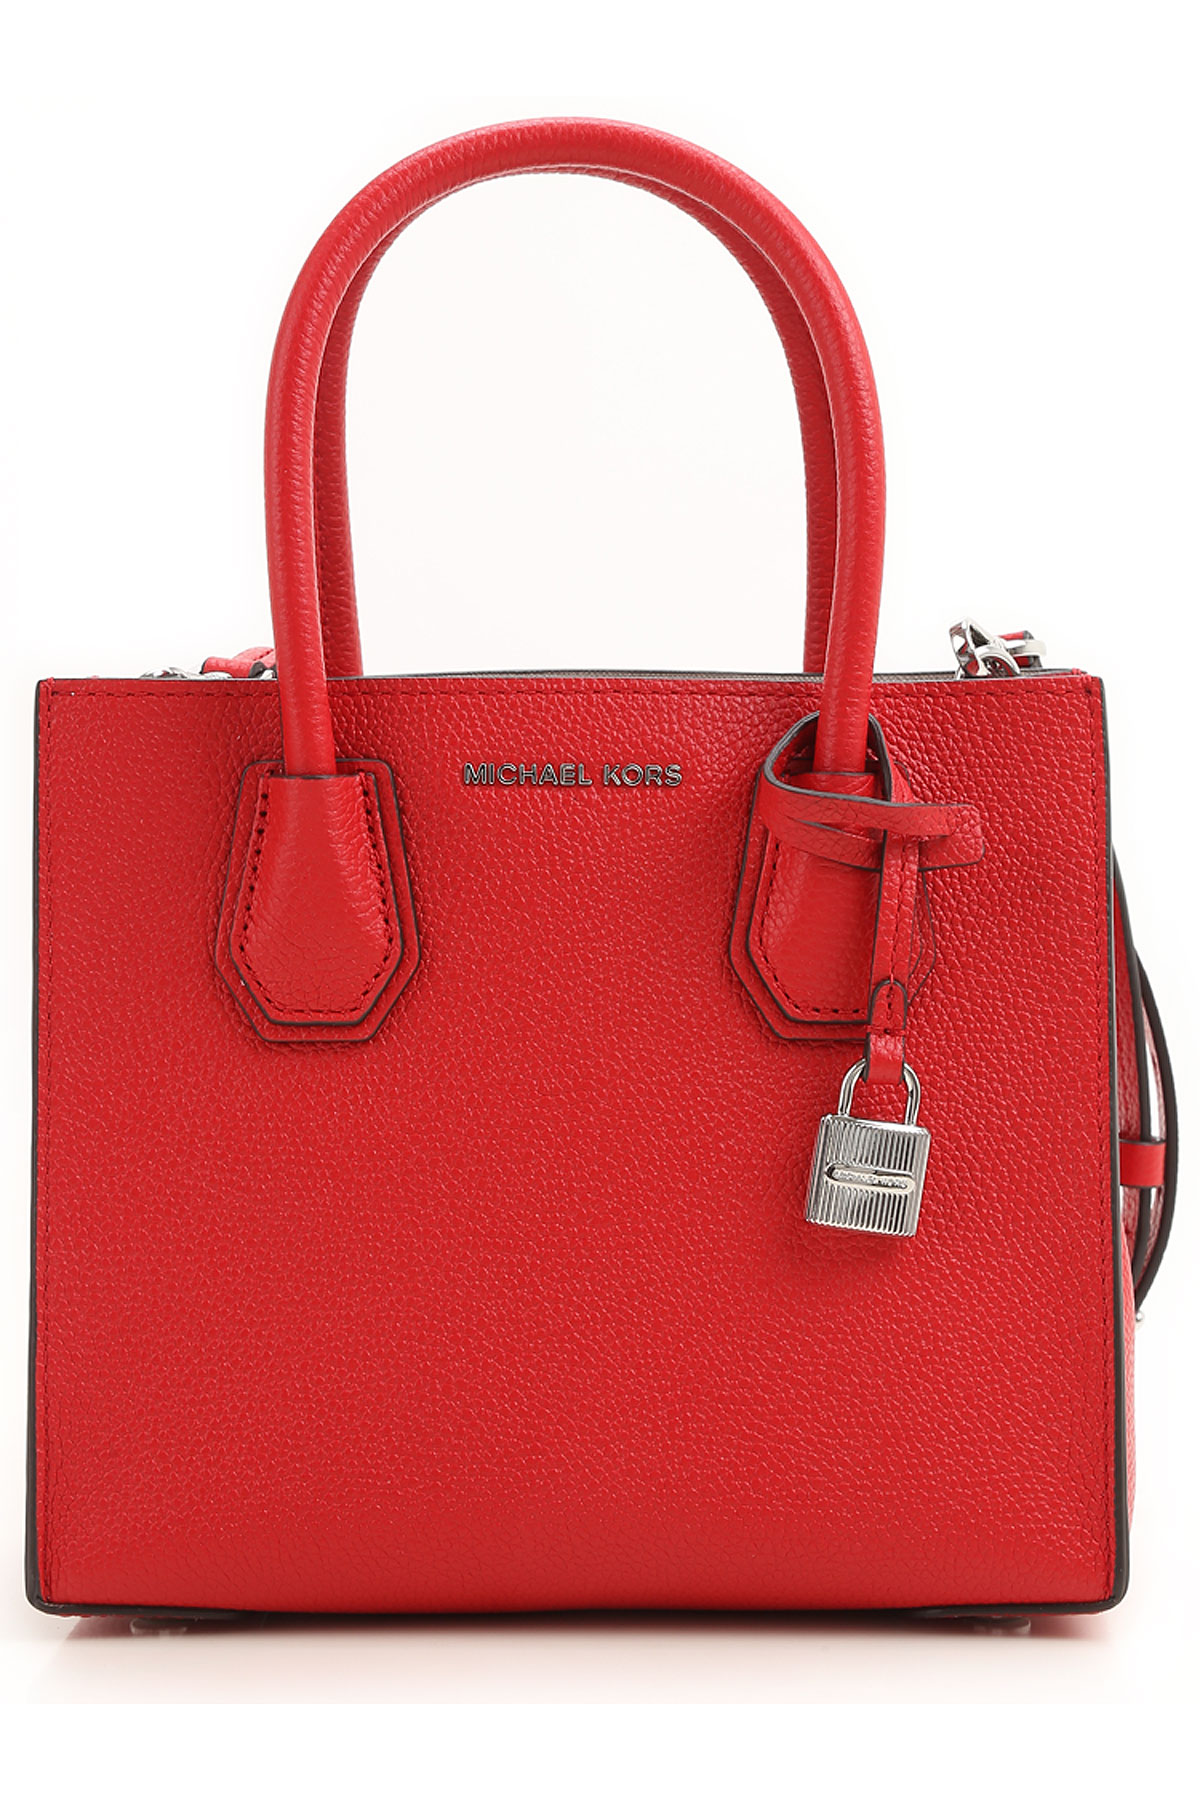 2238a8d8e84546 ... Michael Kors Handbags. FULL SCREEN. 1) Drag to view product 2) Double  click to start rotation